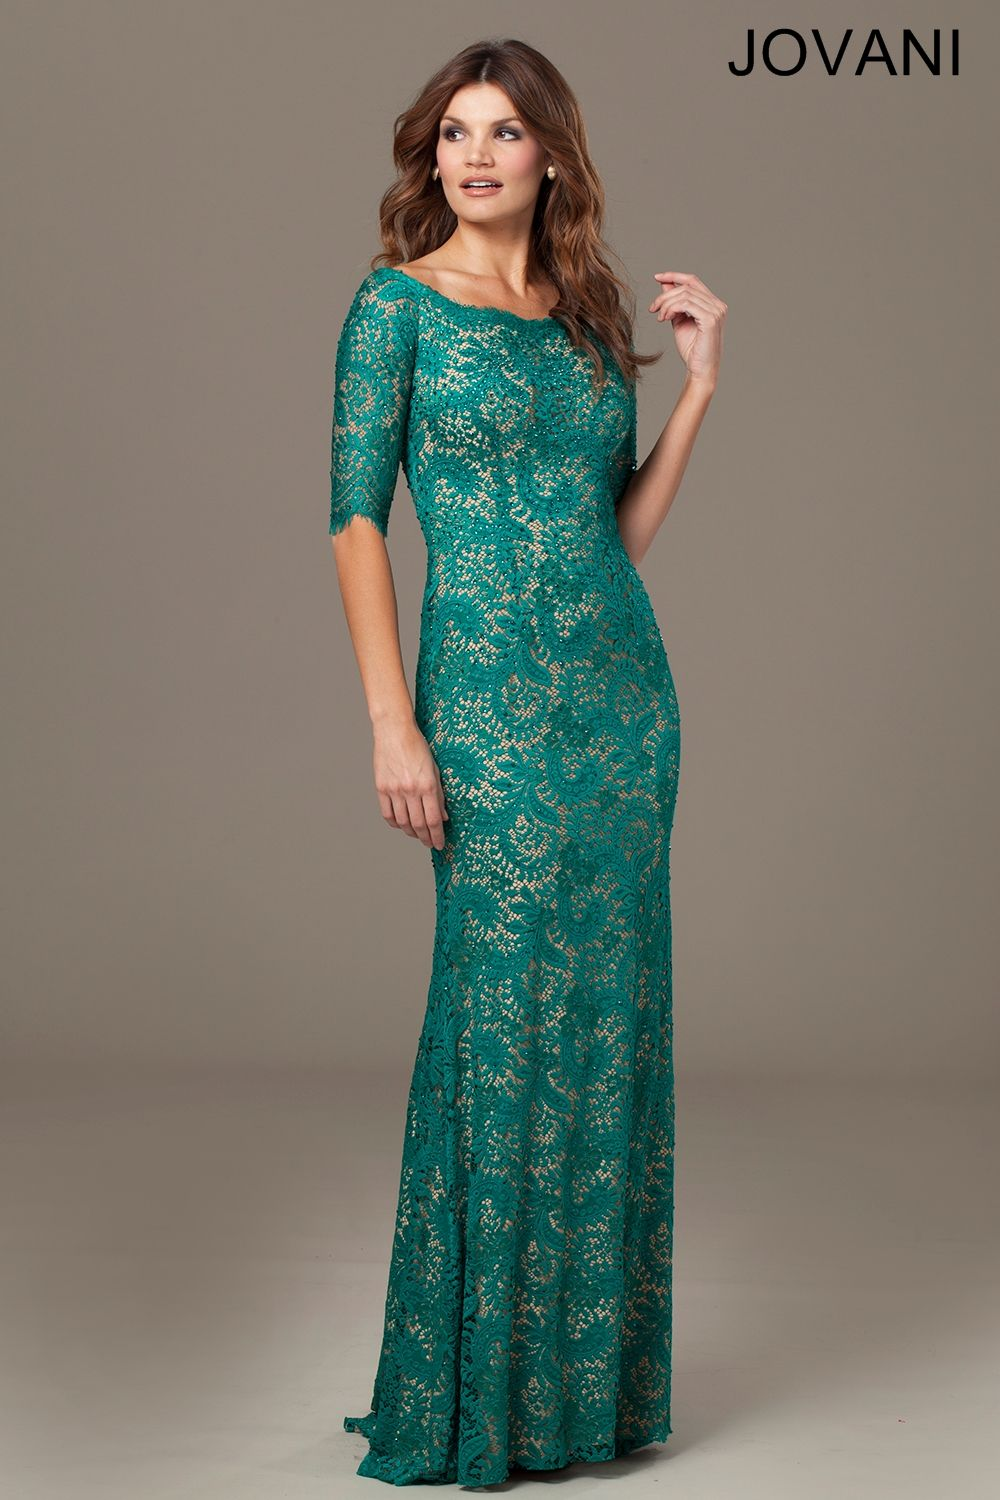 Jovani Boat Neck Lace Dress 25460. Stunning Mother of the Bride ...